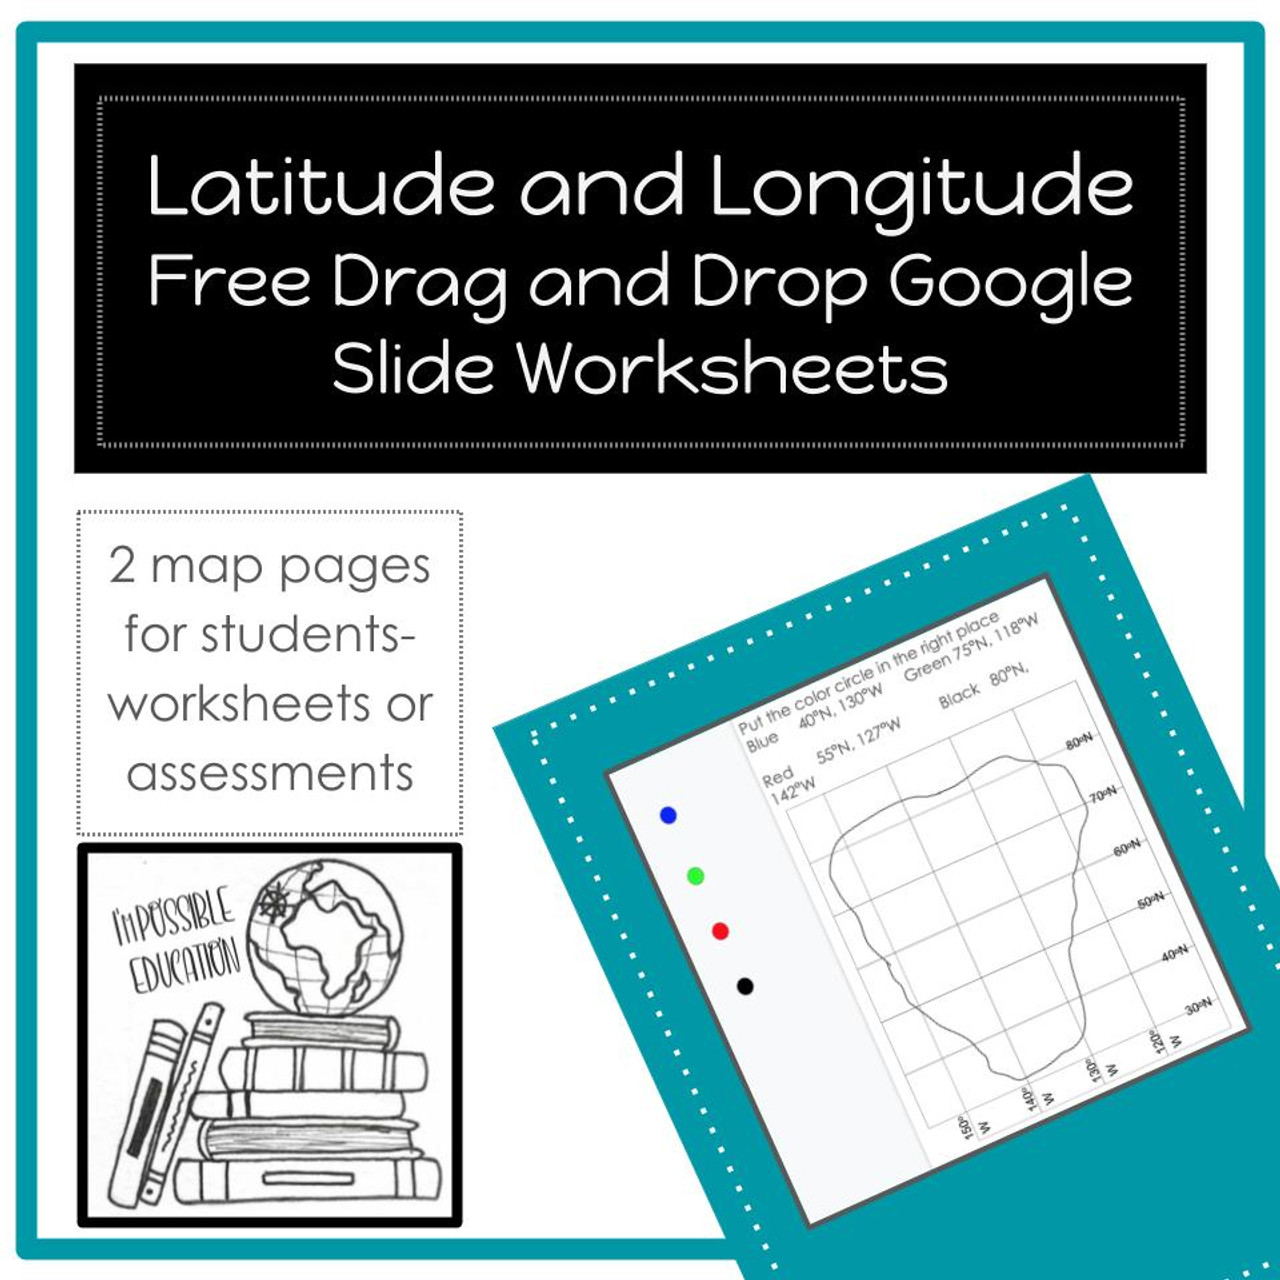 Latitude and Longitude Worksheets- Digital Drag and Drop - FREE [ 1280 x 1280 Pixel ]